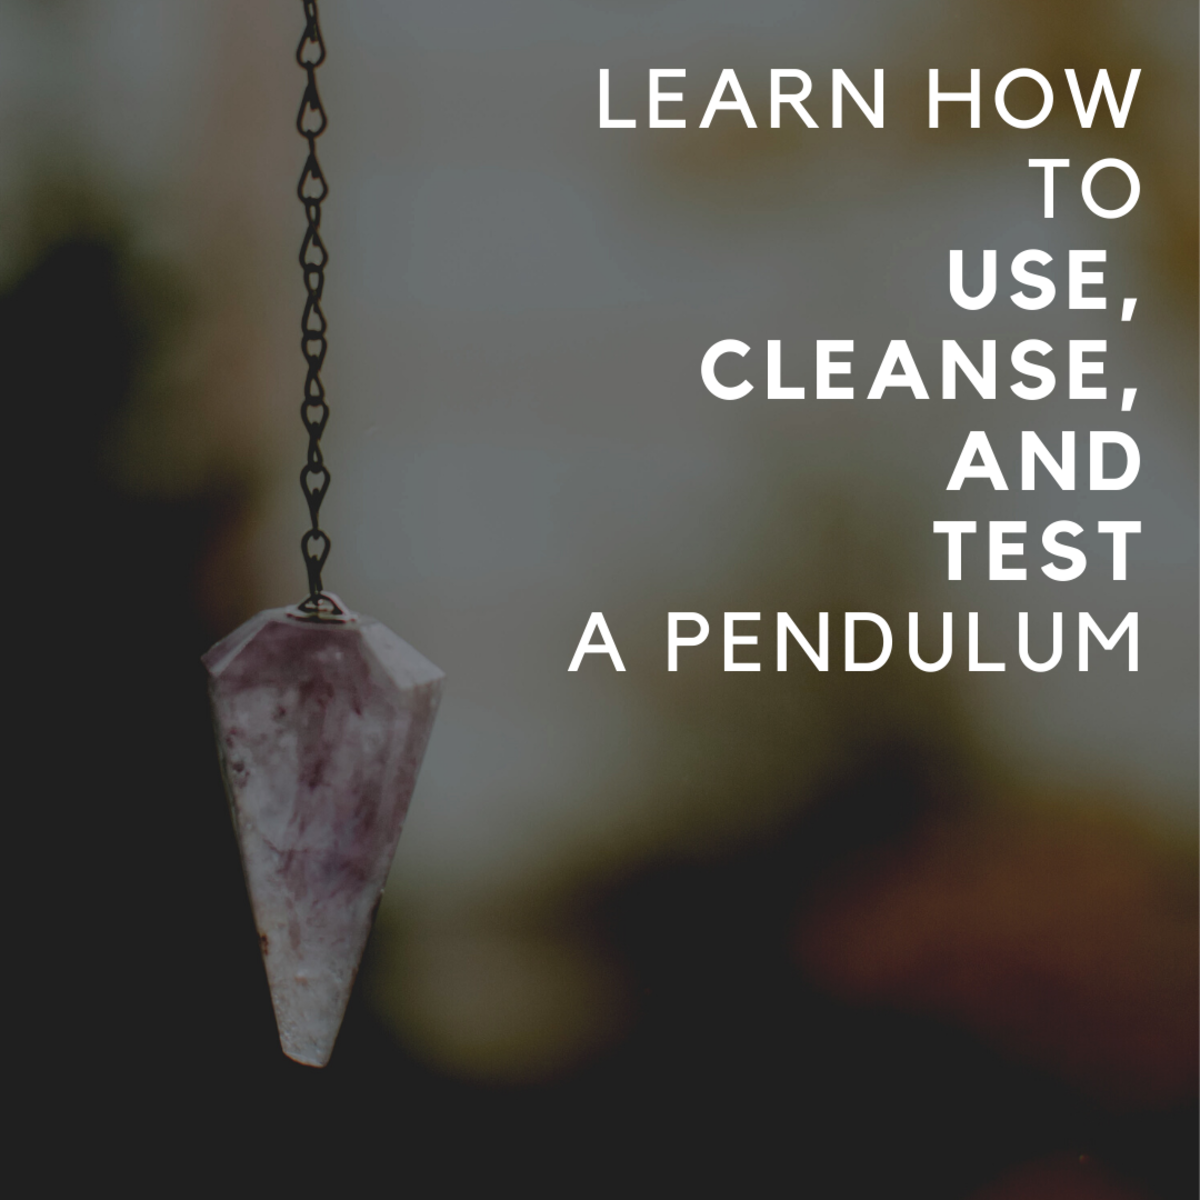 A Guide to Selecting, Using, Cleansing, and Testing a Pendulum